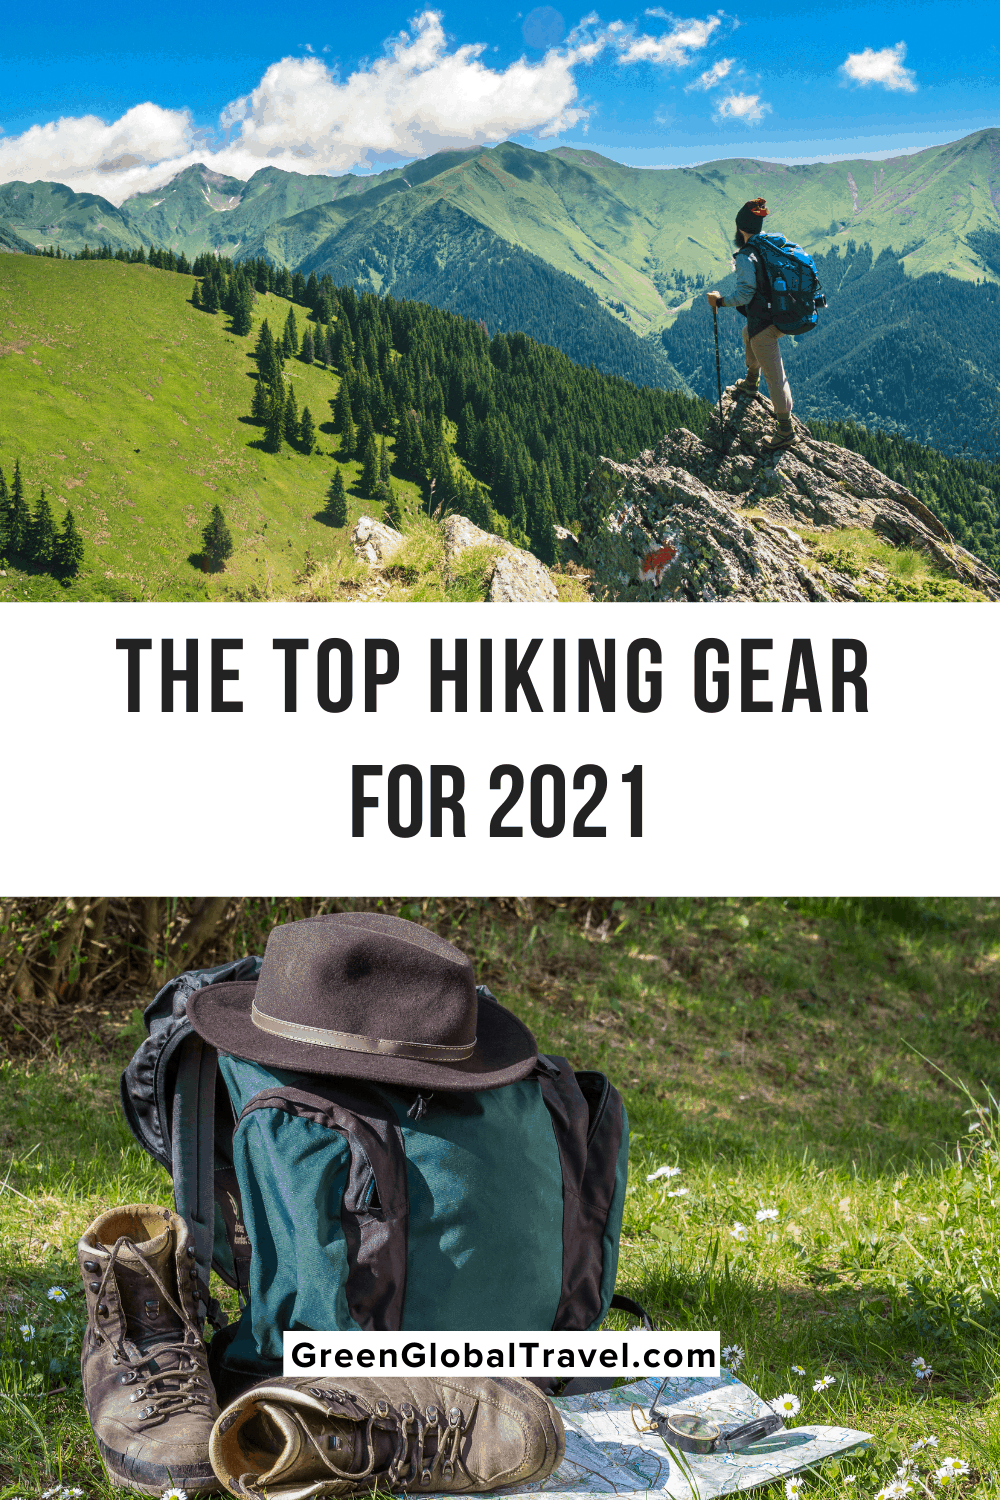 Best Hiking Gear for 2021